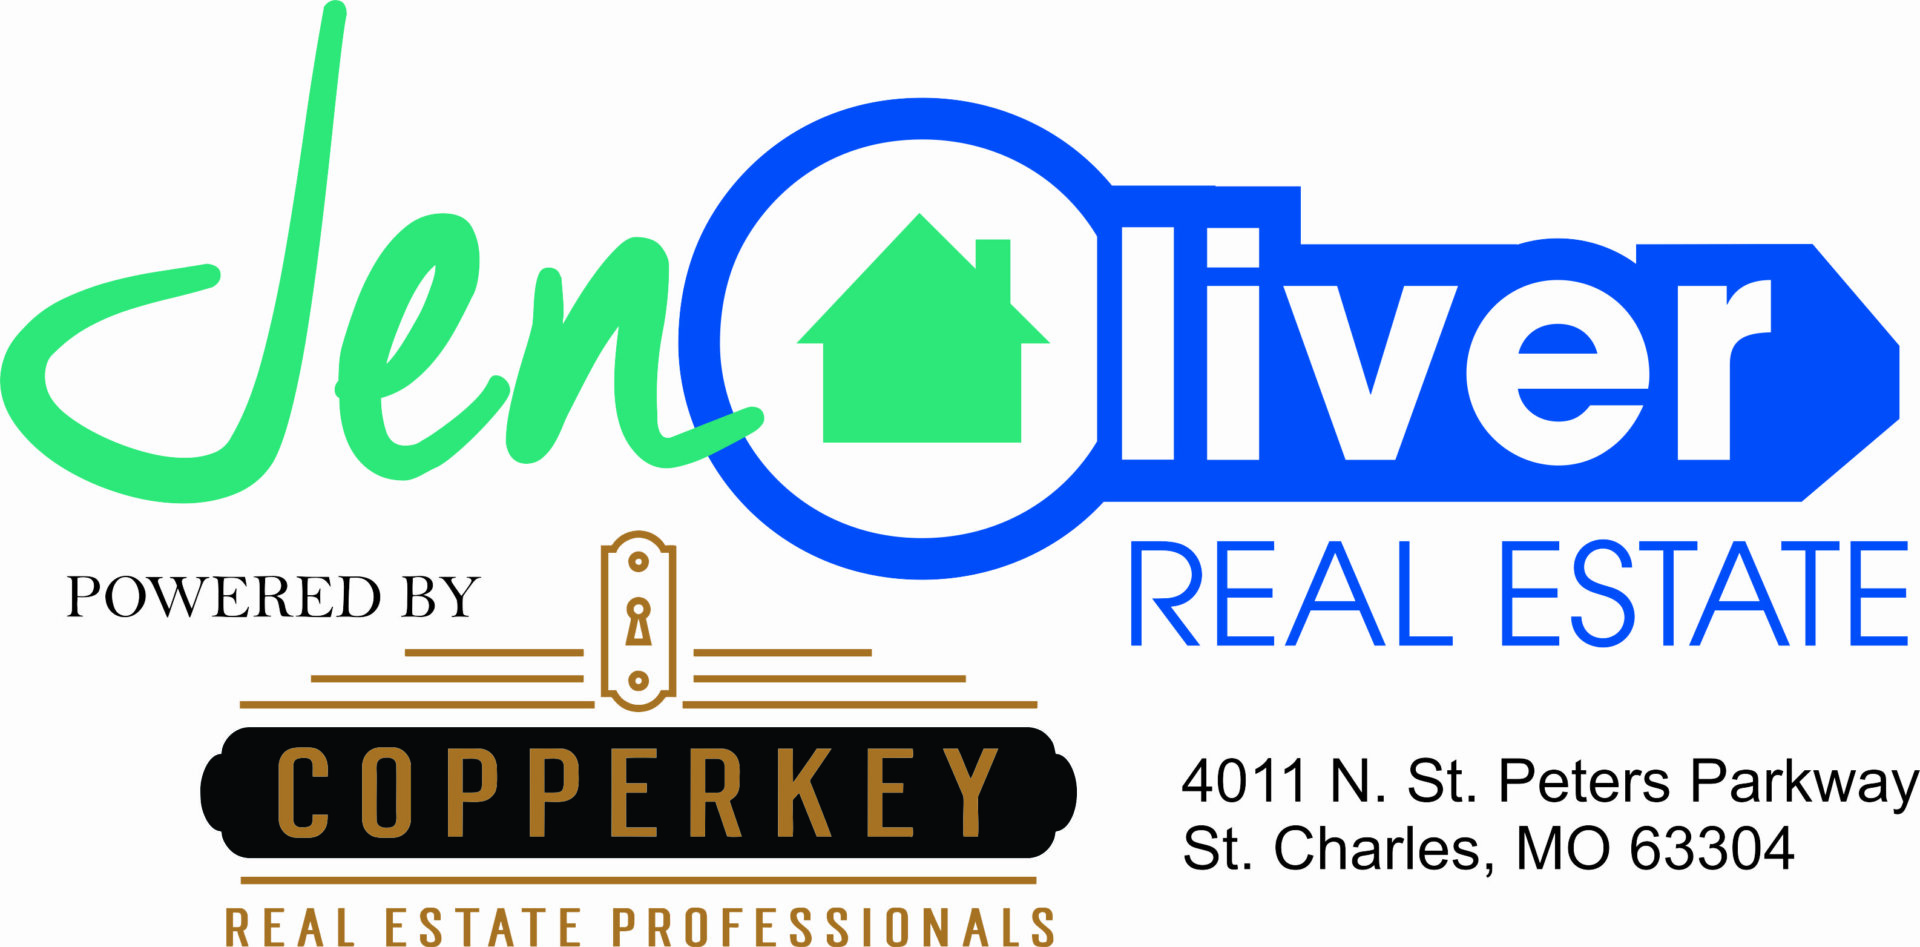 Jen Oliver Real Estate powered by CopperKey logo